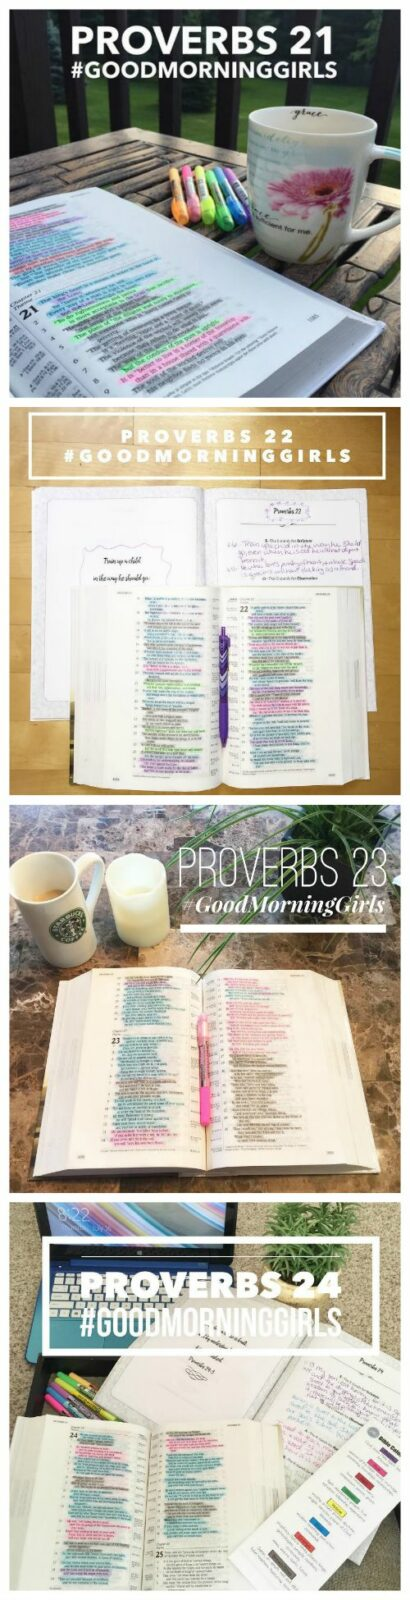 Proverbs 21-24 instagram collage